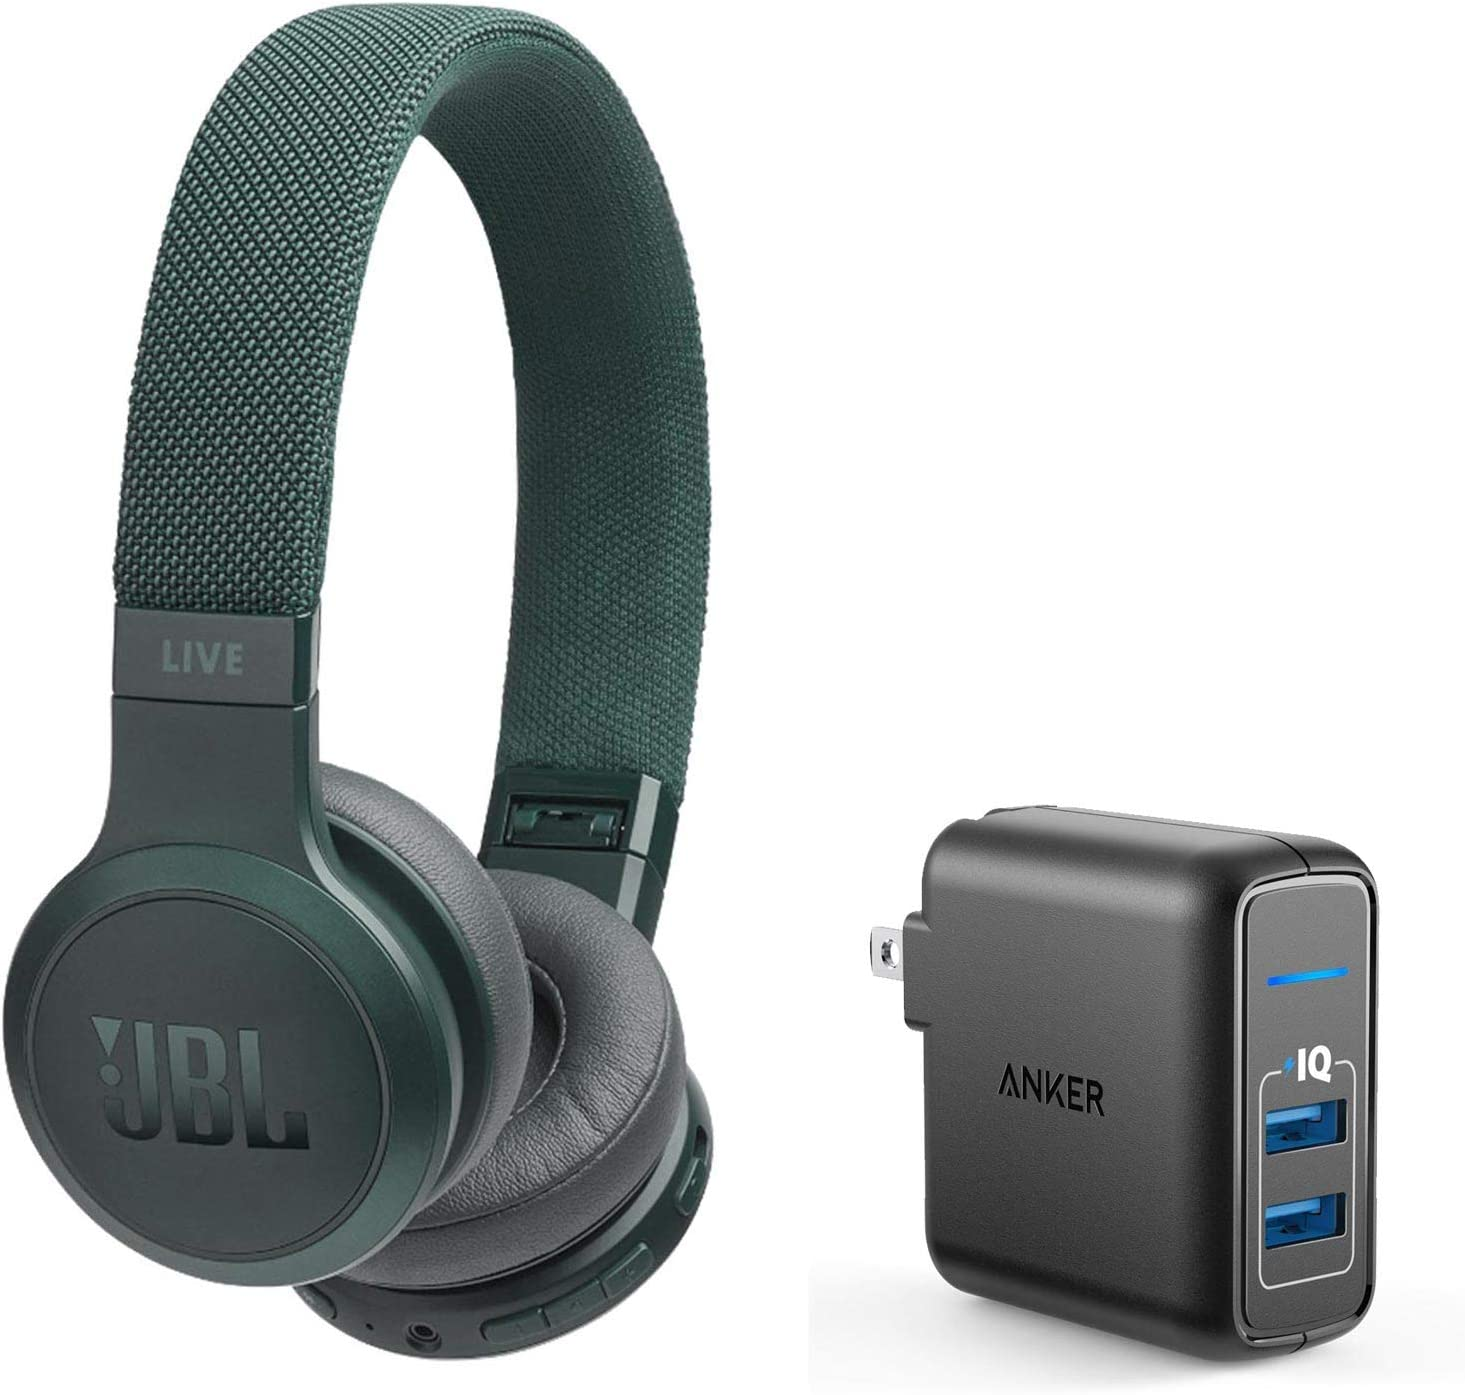 JBL Live 400BT On-Ear Wireless Bluetooth Headphones Bundle with Anker PowerPort Elite 2 Port USB Wall Charger - Green